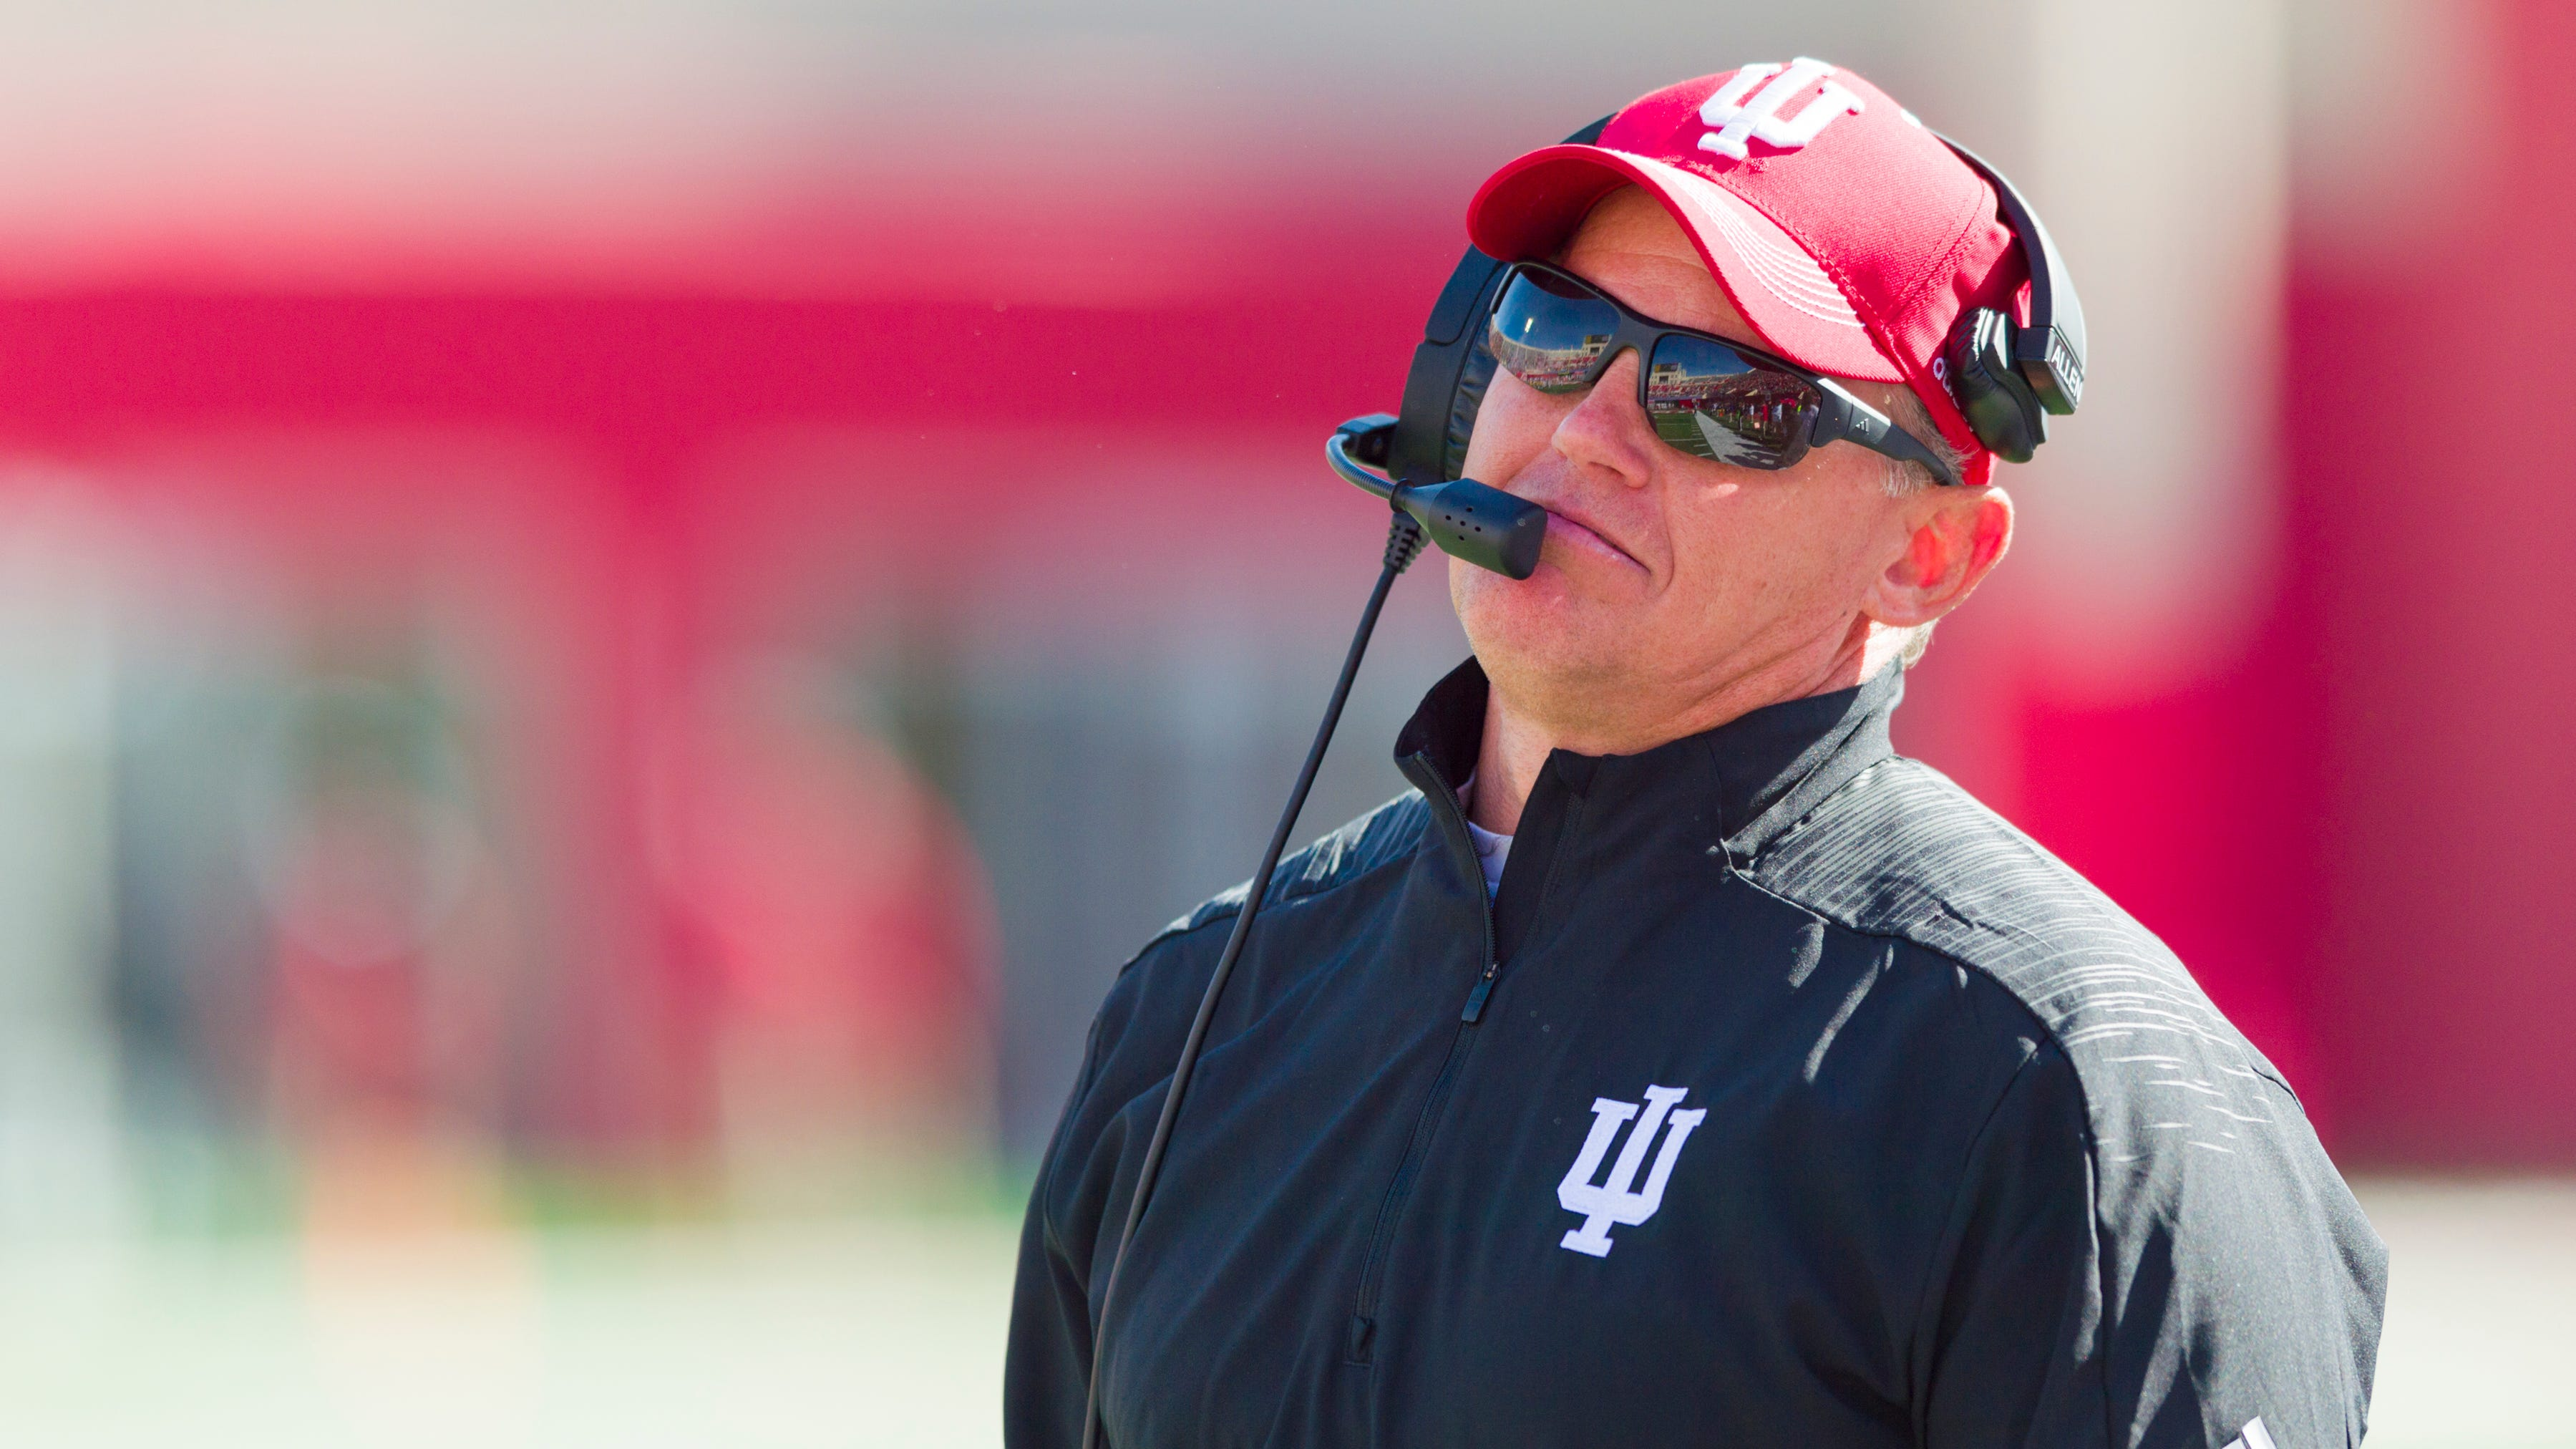 Indiana head coach Tom Allen reacts to a call by the officials during the second half of an NCAA college football game against Iowa, Saturday, Oct. 13, 2018, in Bloomington, Ind. Iowa won 42-16.